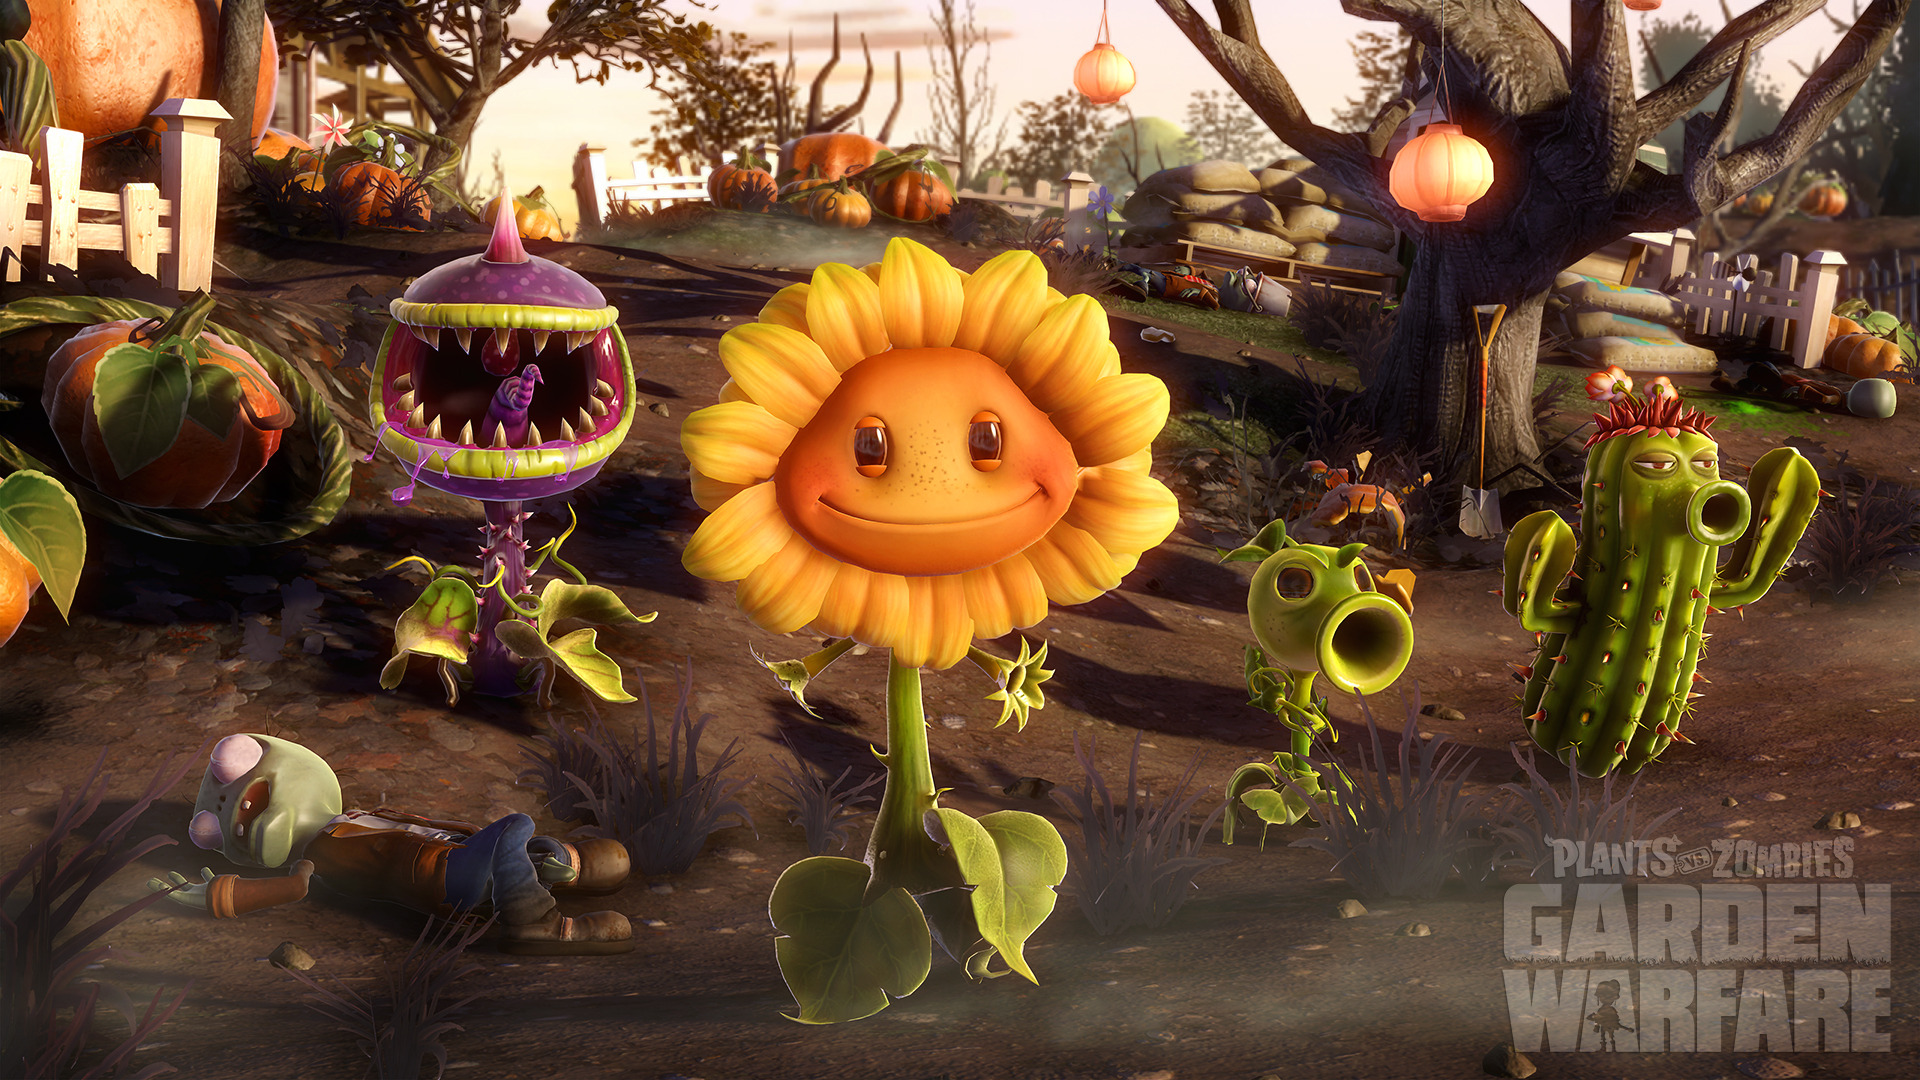 7 Plants Vs Zombies Garden Warfare Fondos De Pantalla Hd Fondos De Escritorio Wallpaper Abyss